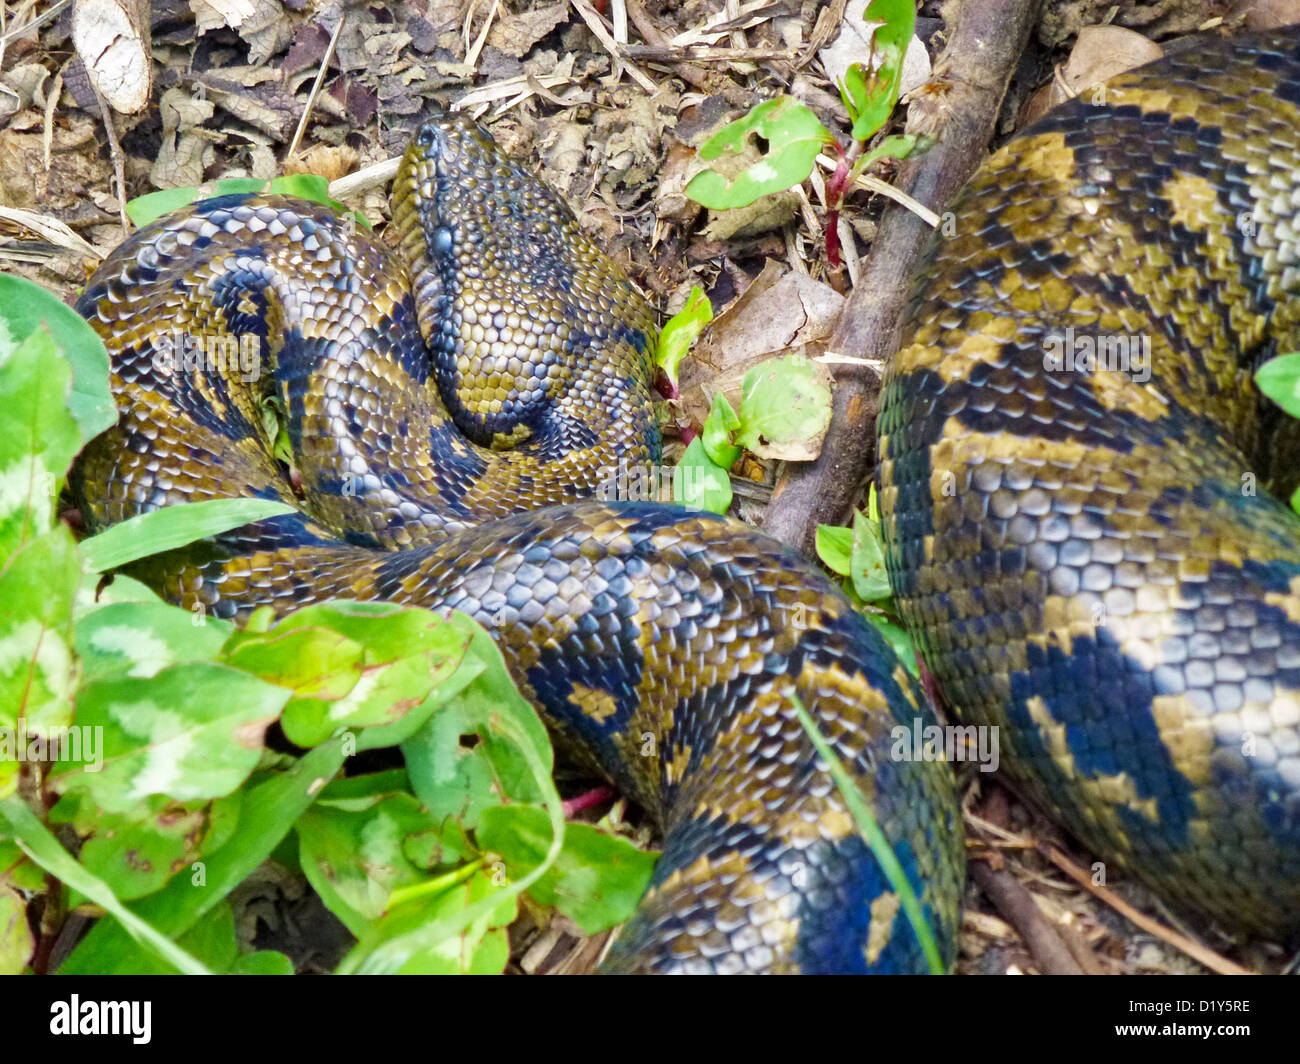 Boas Stock Photos & Boas Stock Images - Alamy